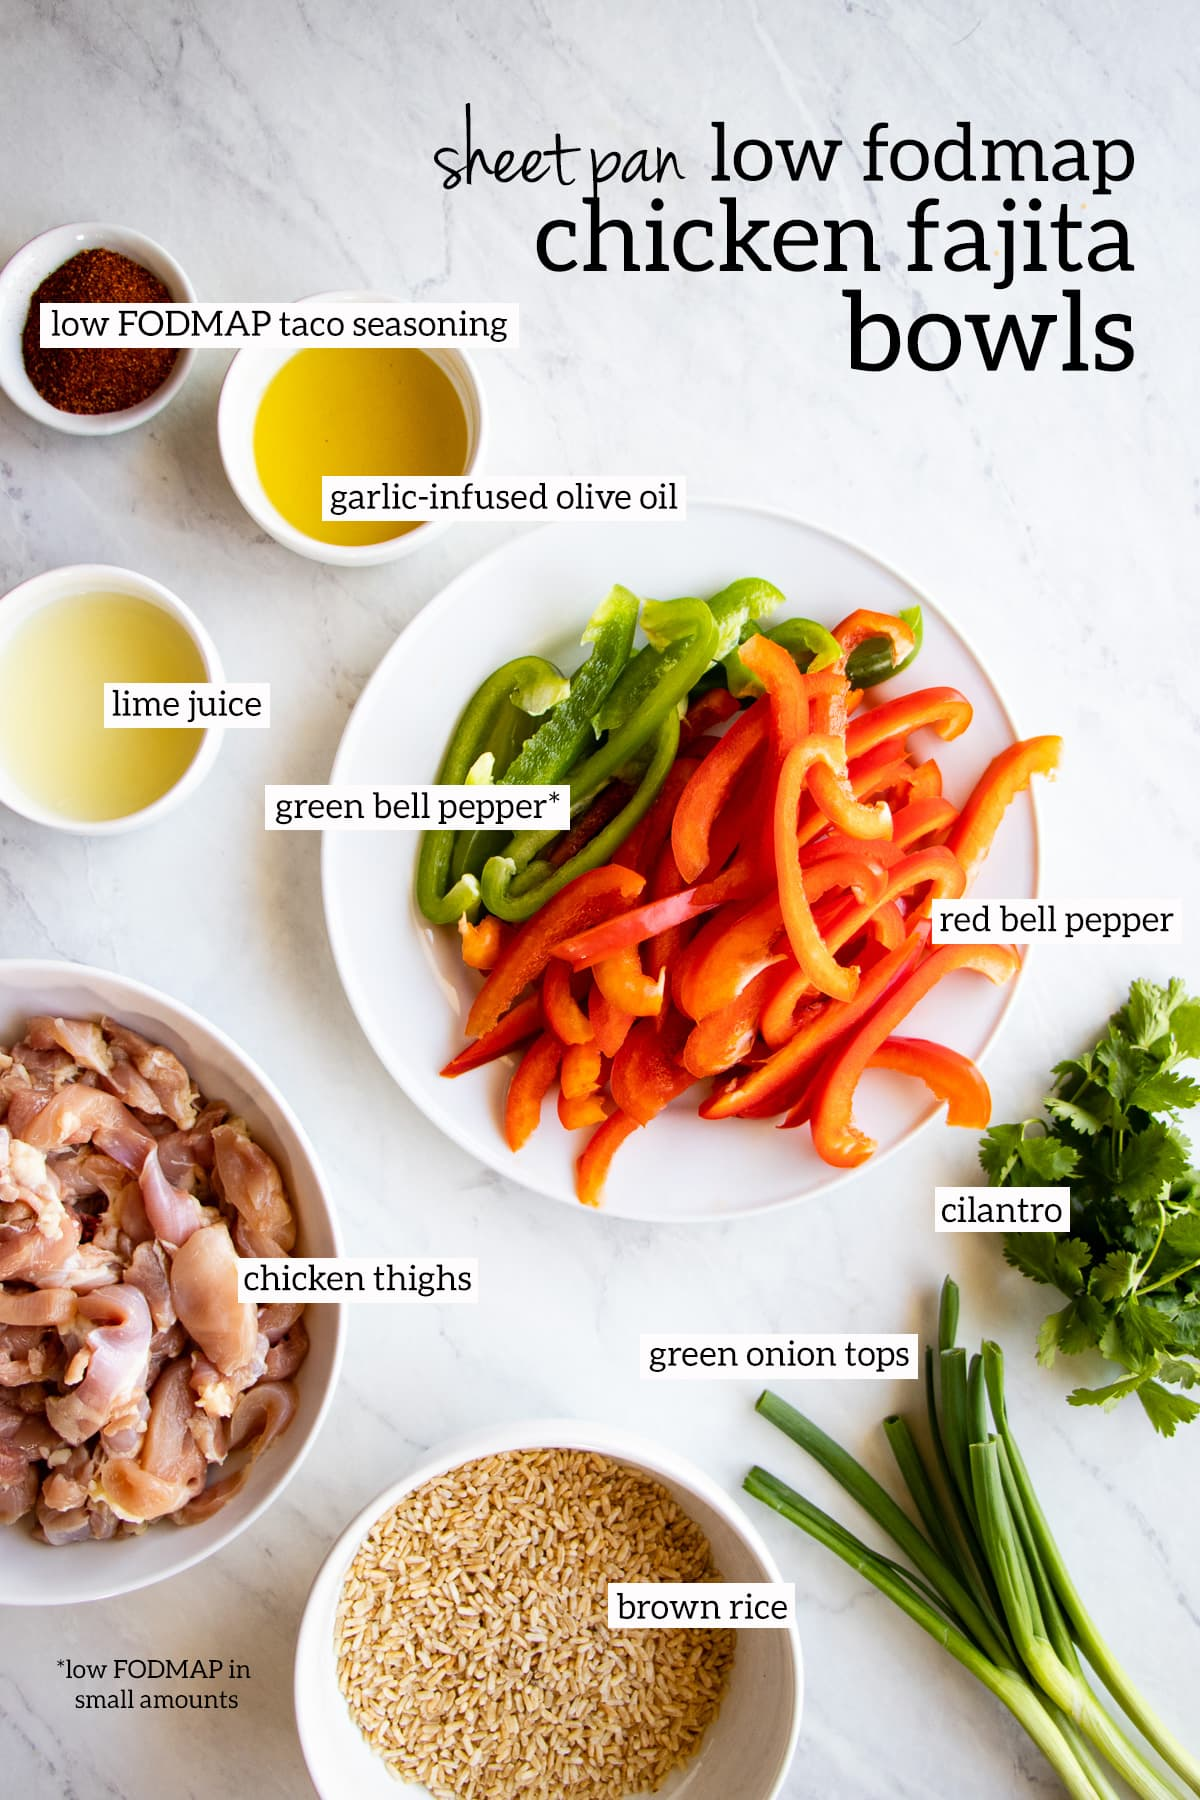 Ingredients needed for low FODMAP sheet pan chicken fajita bowls measured out into individual dishes.